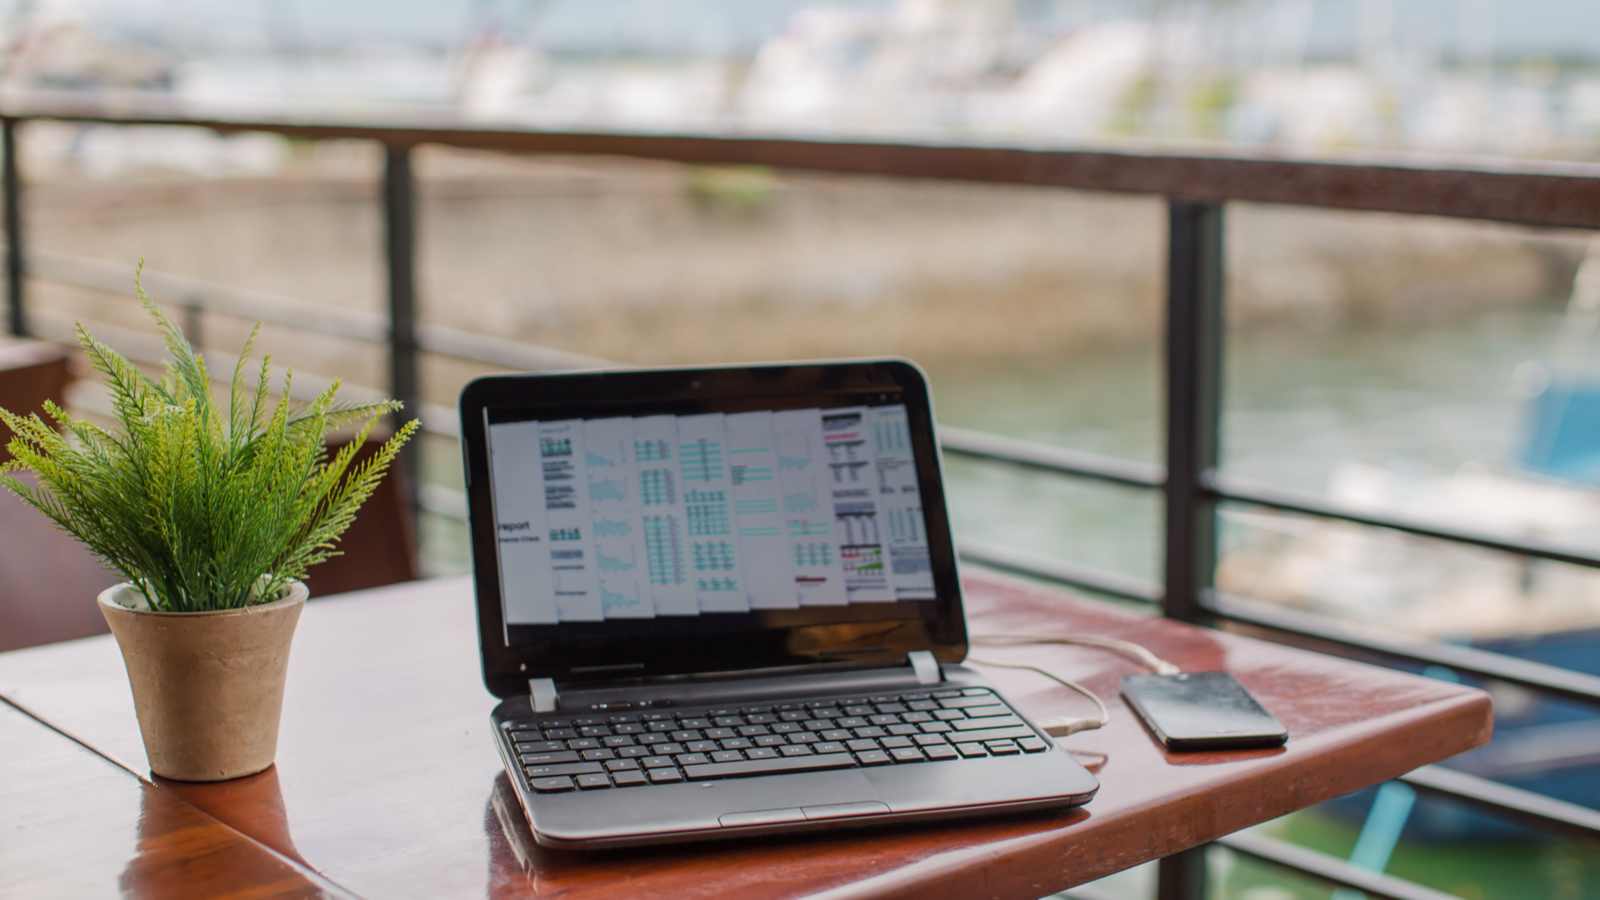 Laptop on wooden table at the yacht club cafe with online business via WiFi hotspot tethering